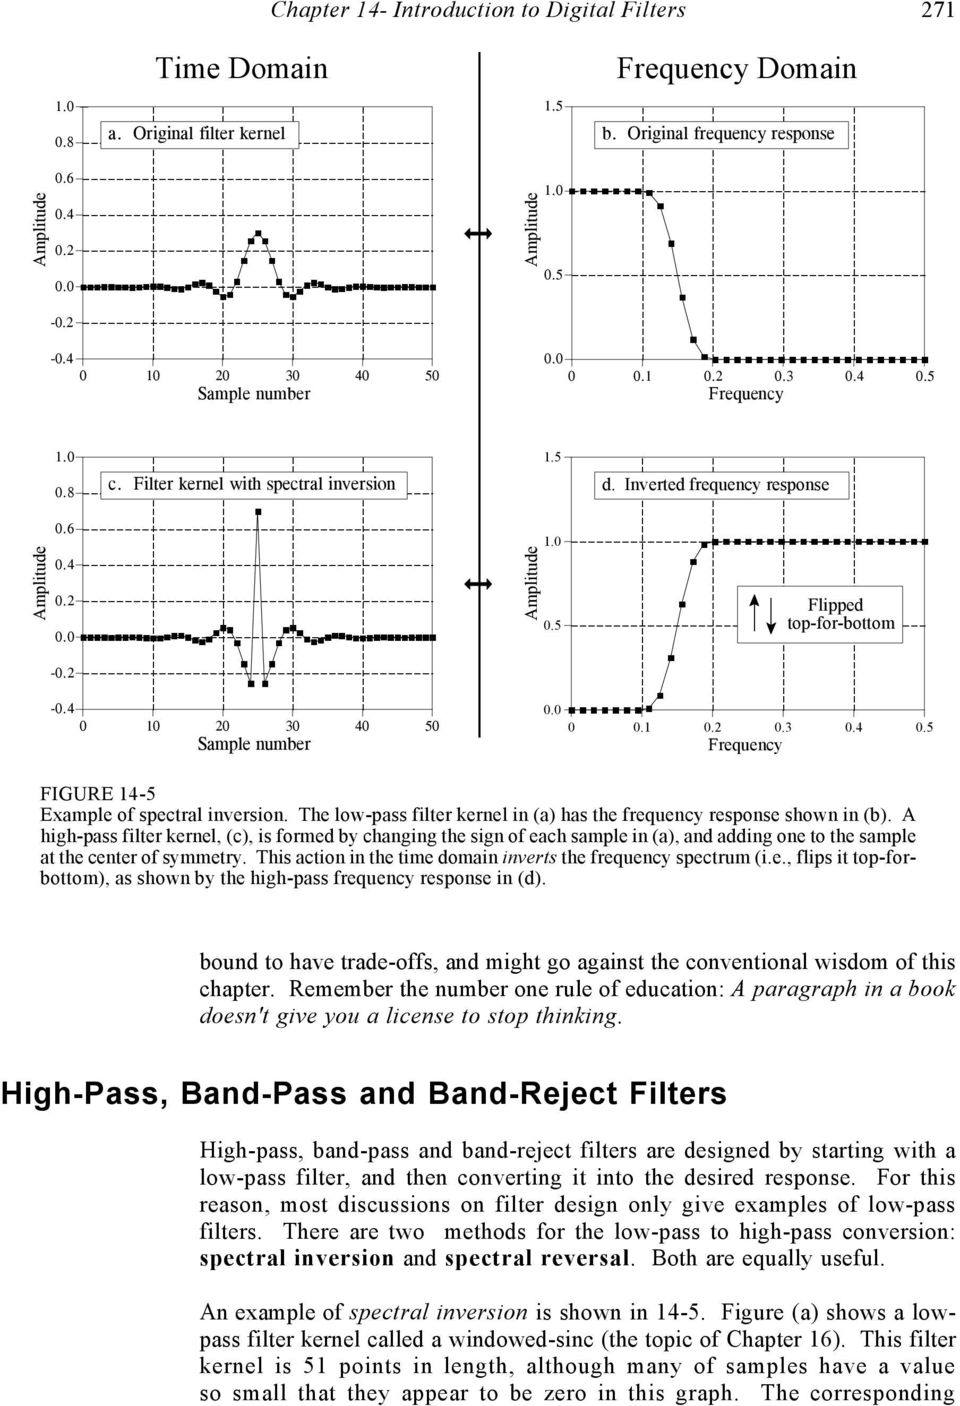 Introduction To Digital Filters Pdf Low Pass Filter Diagram The Kernel In A Has Frequency Response Shown